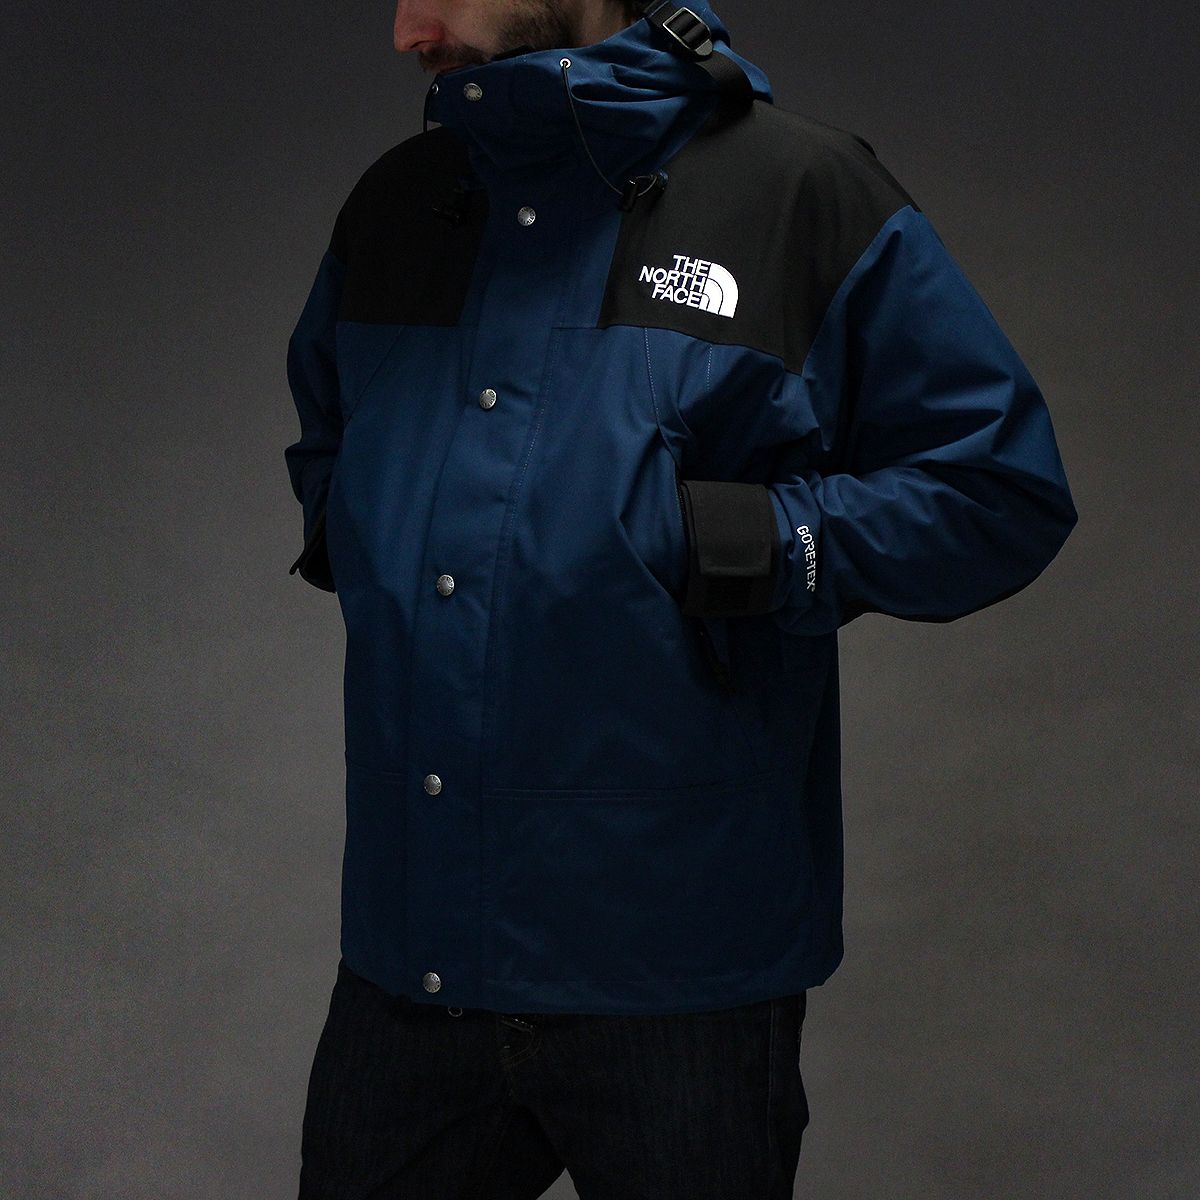 THE NORTH FACE 1990 MOUNTAIN GTX JACKET – BLUE WING TEAL  054adee80f05